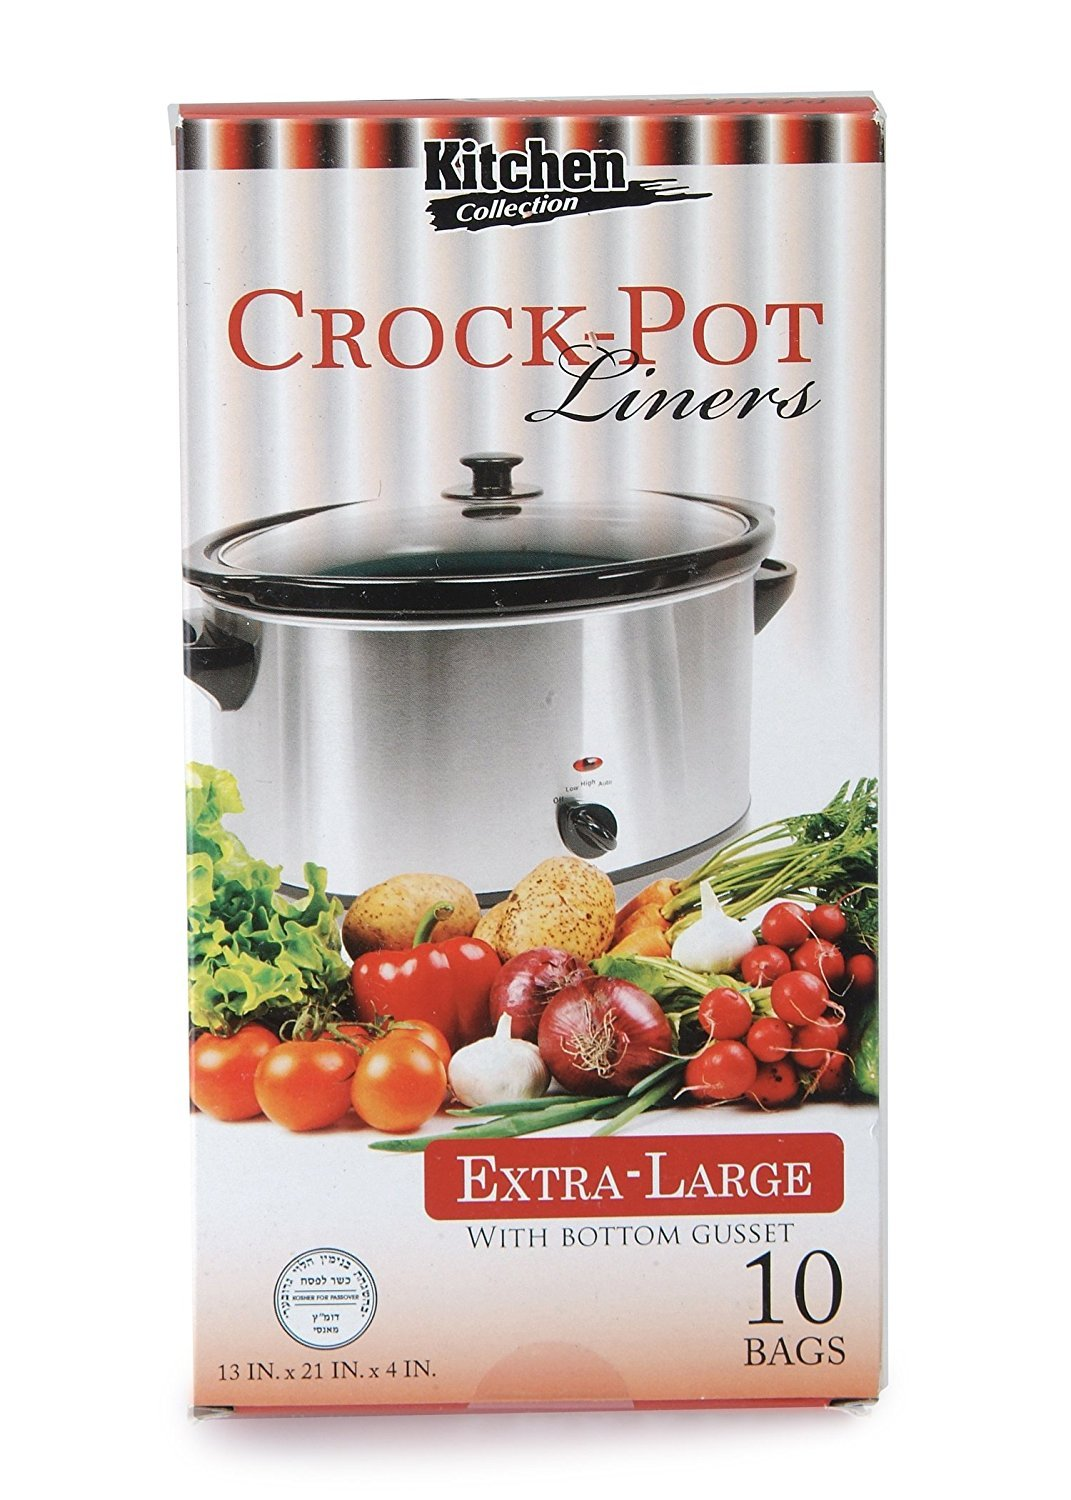 amazon com kitchen collection crock pot liners extra large 10 amazon com kitchen collection crock pot liners extra large 10 liners baking mats kitchen dining